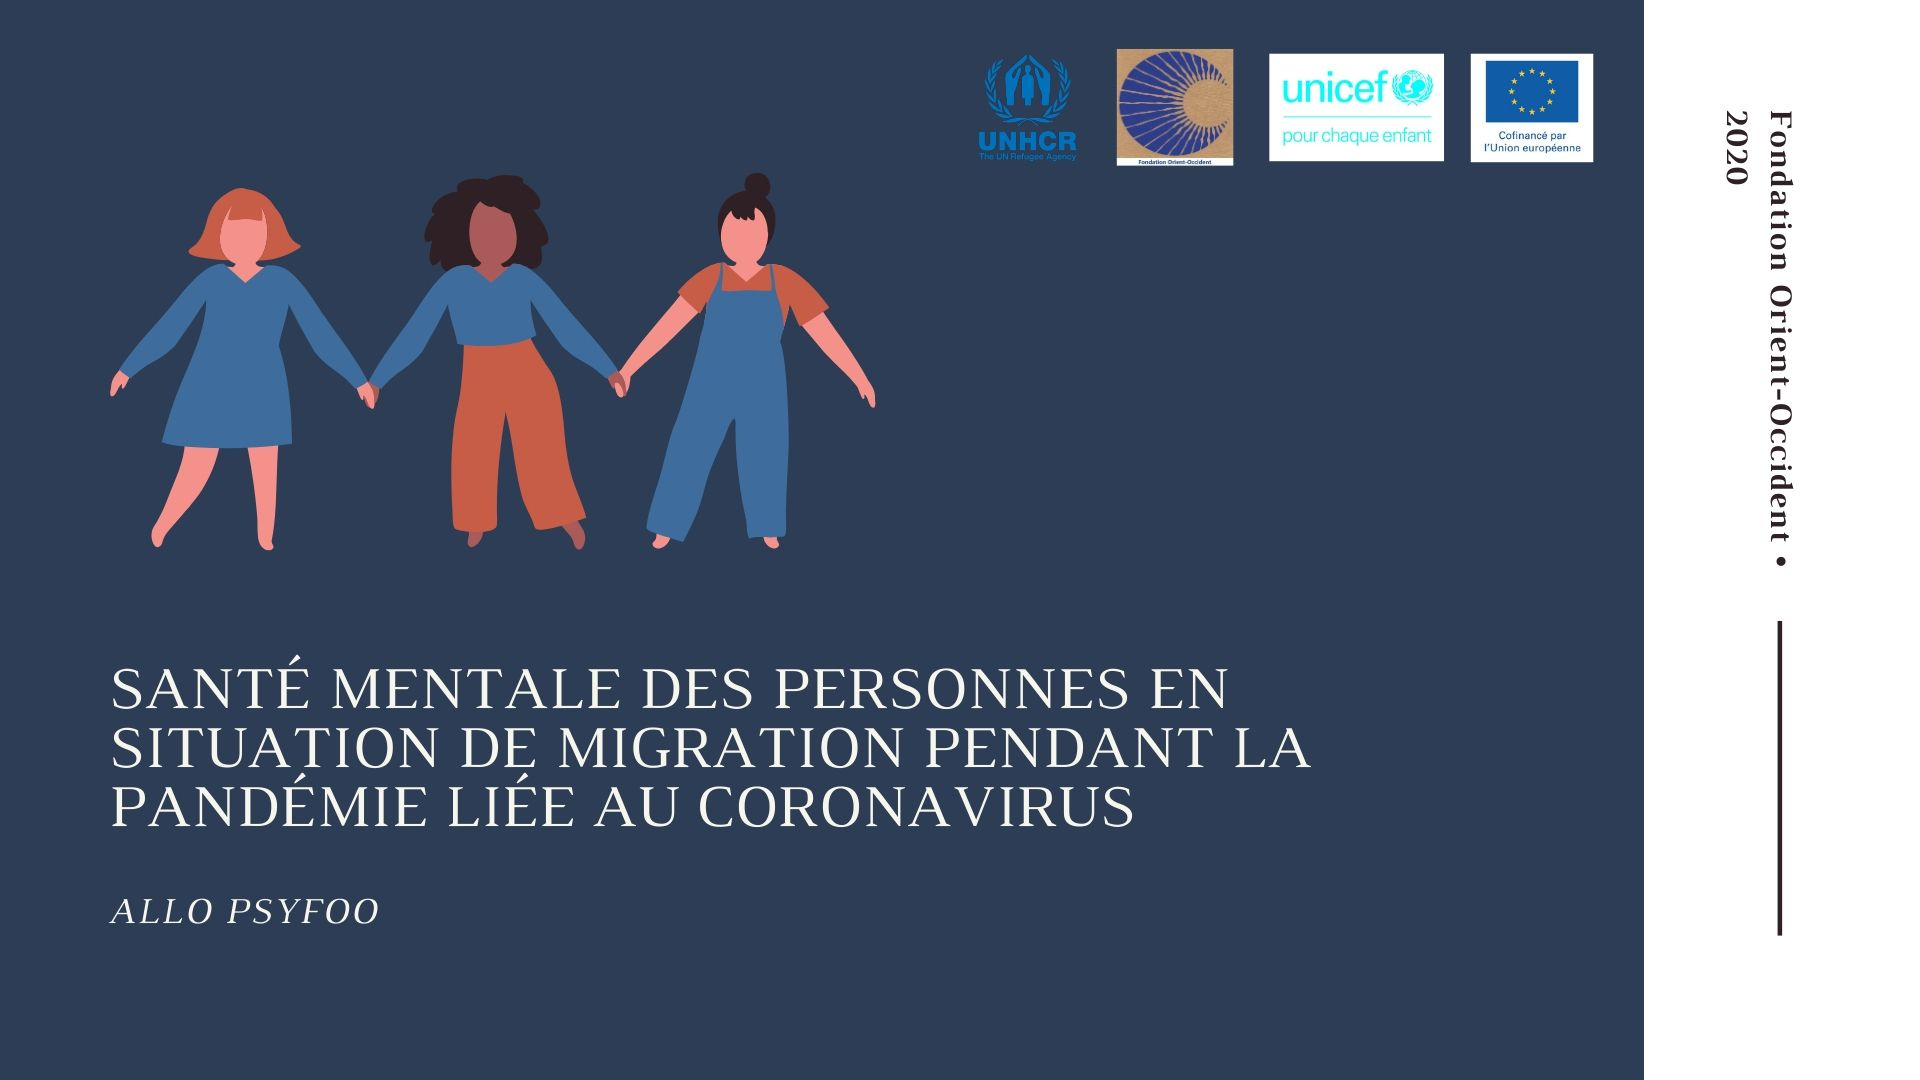 Mental health of people in a situation of a migration during the coronavirus pandemic